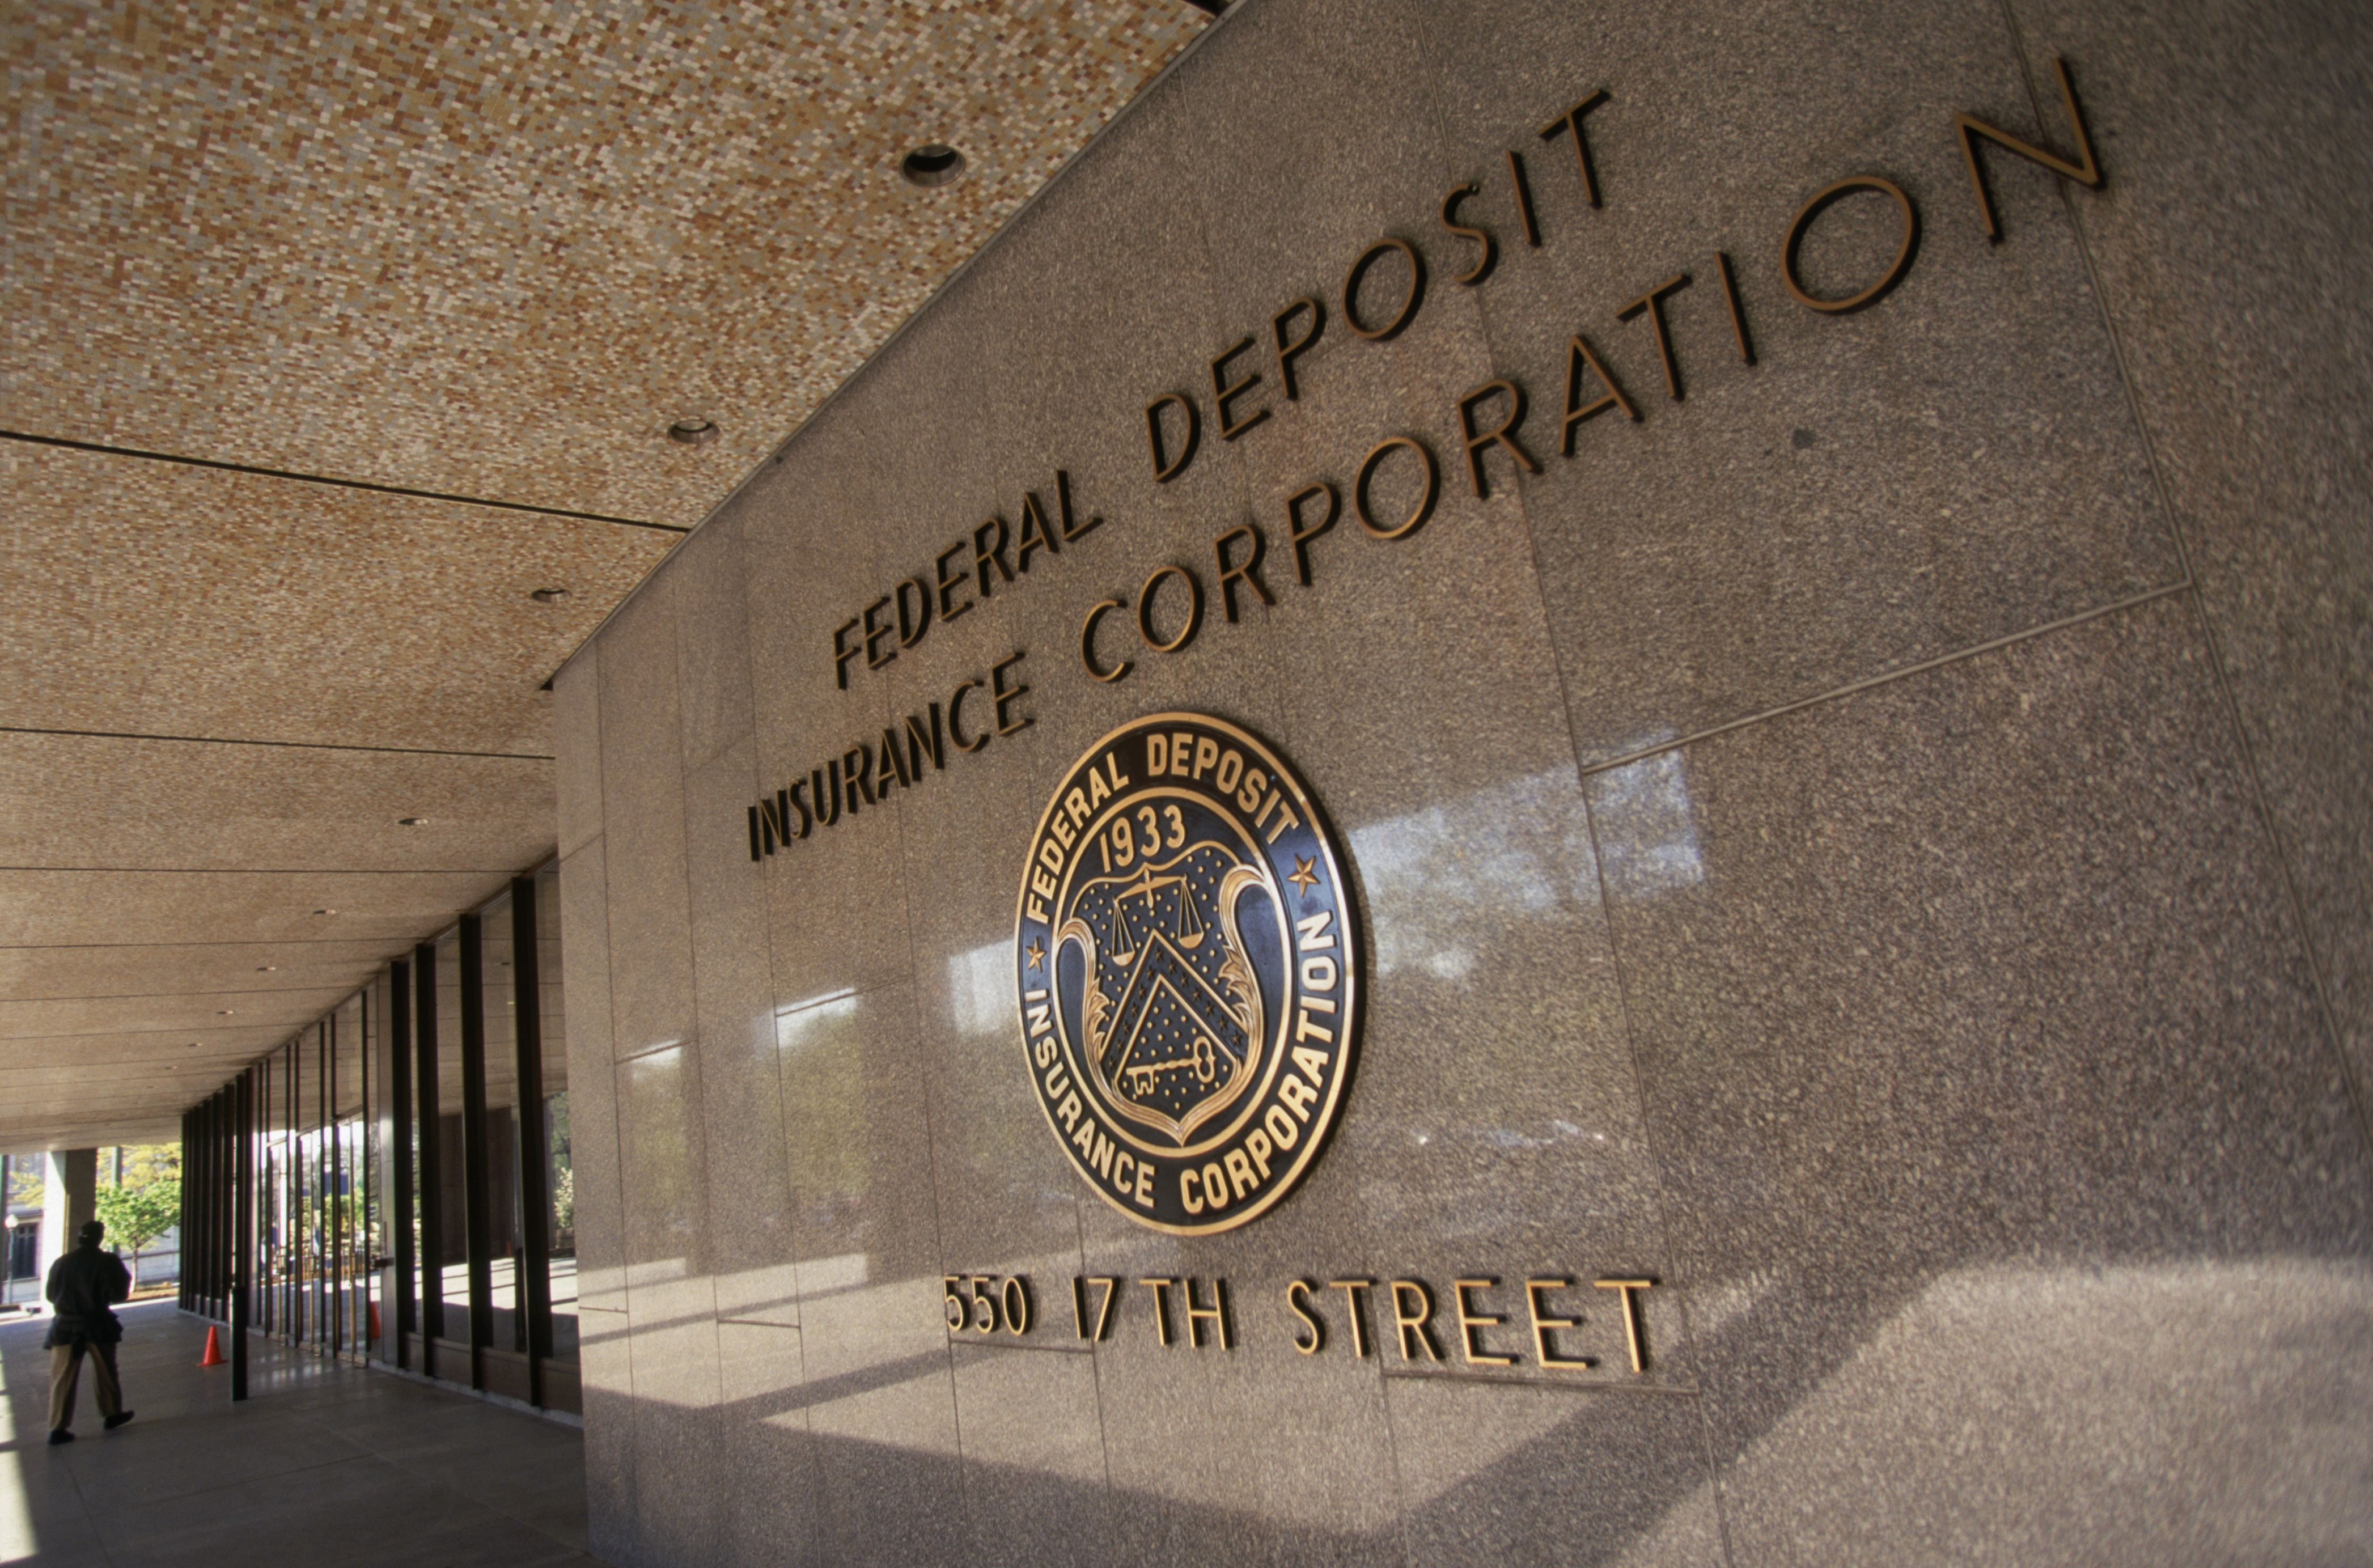 Federal Deposit Insurance Corporation sign on building